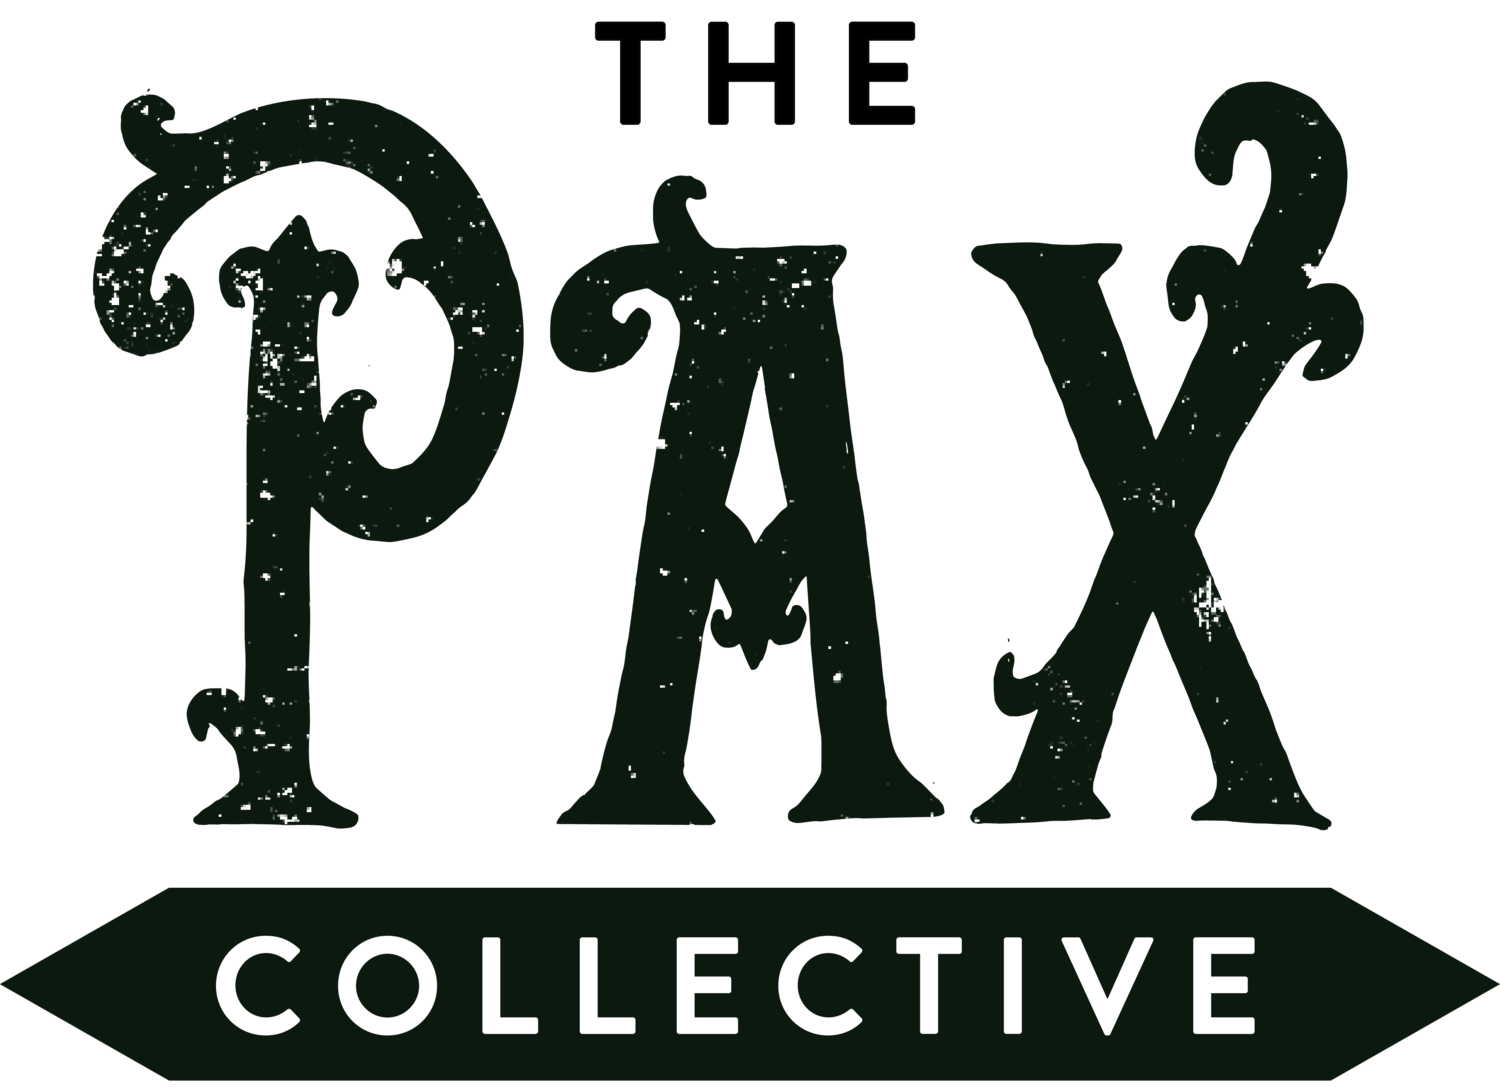 The Pax Collective — A faith-based lifestyle blog and creative design business